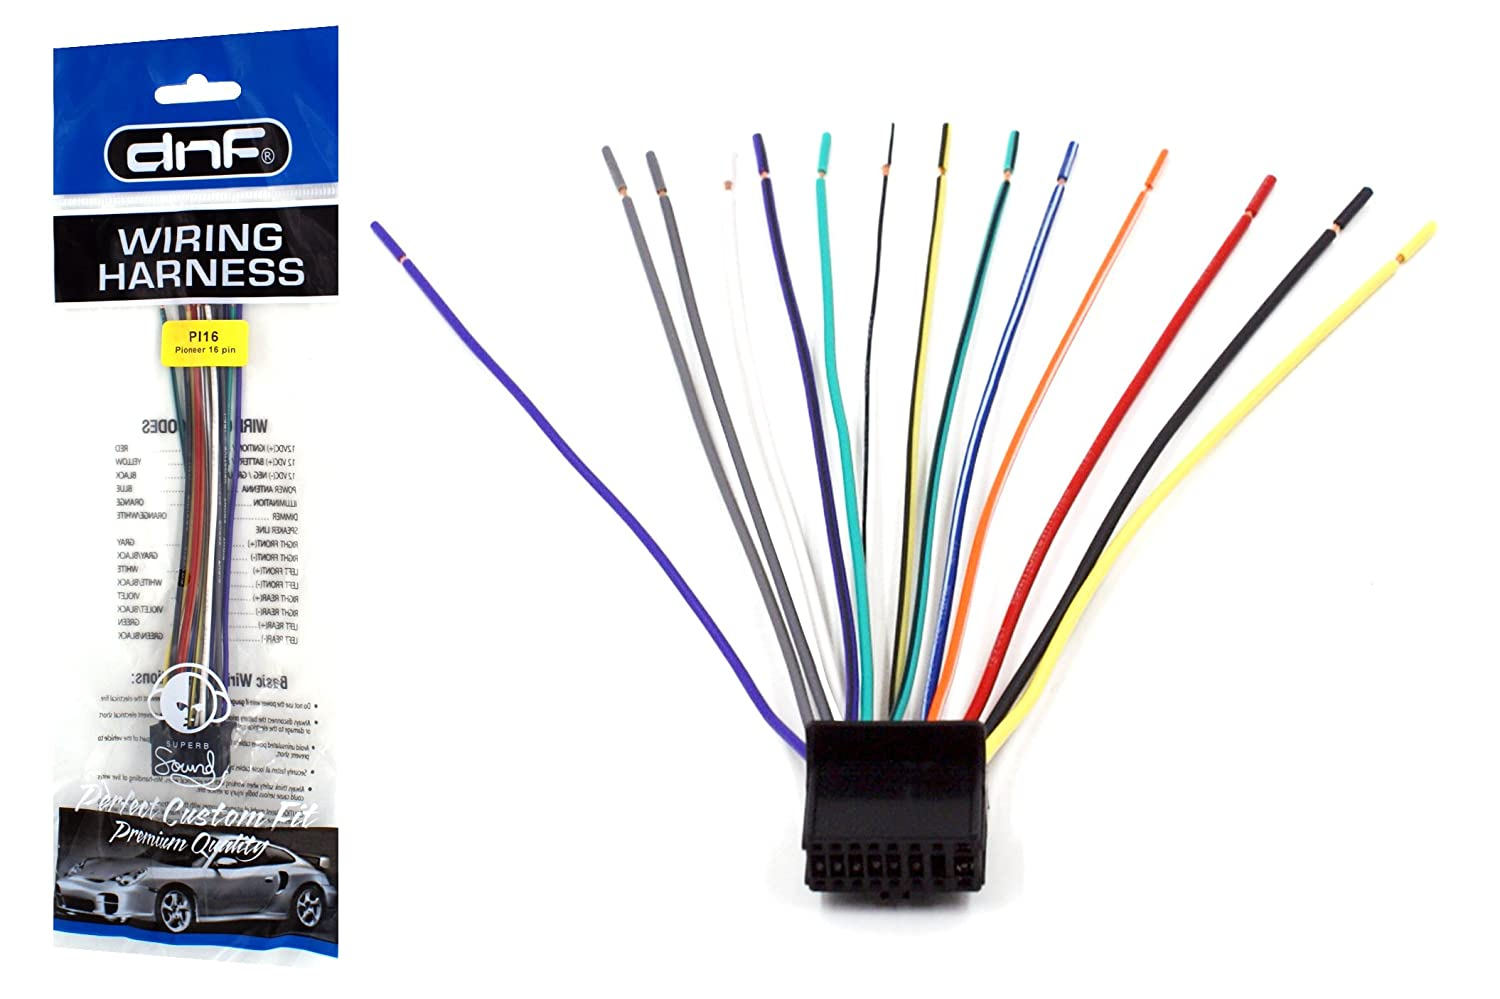 71A5xHv4deL._SL1500_ amazon com dnf pioneer wiring harness 0307 deh p4000ub deh p400ub pioneer deh p3700mp wiring diagram at alyssarenee.co